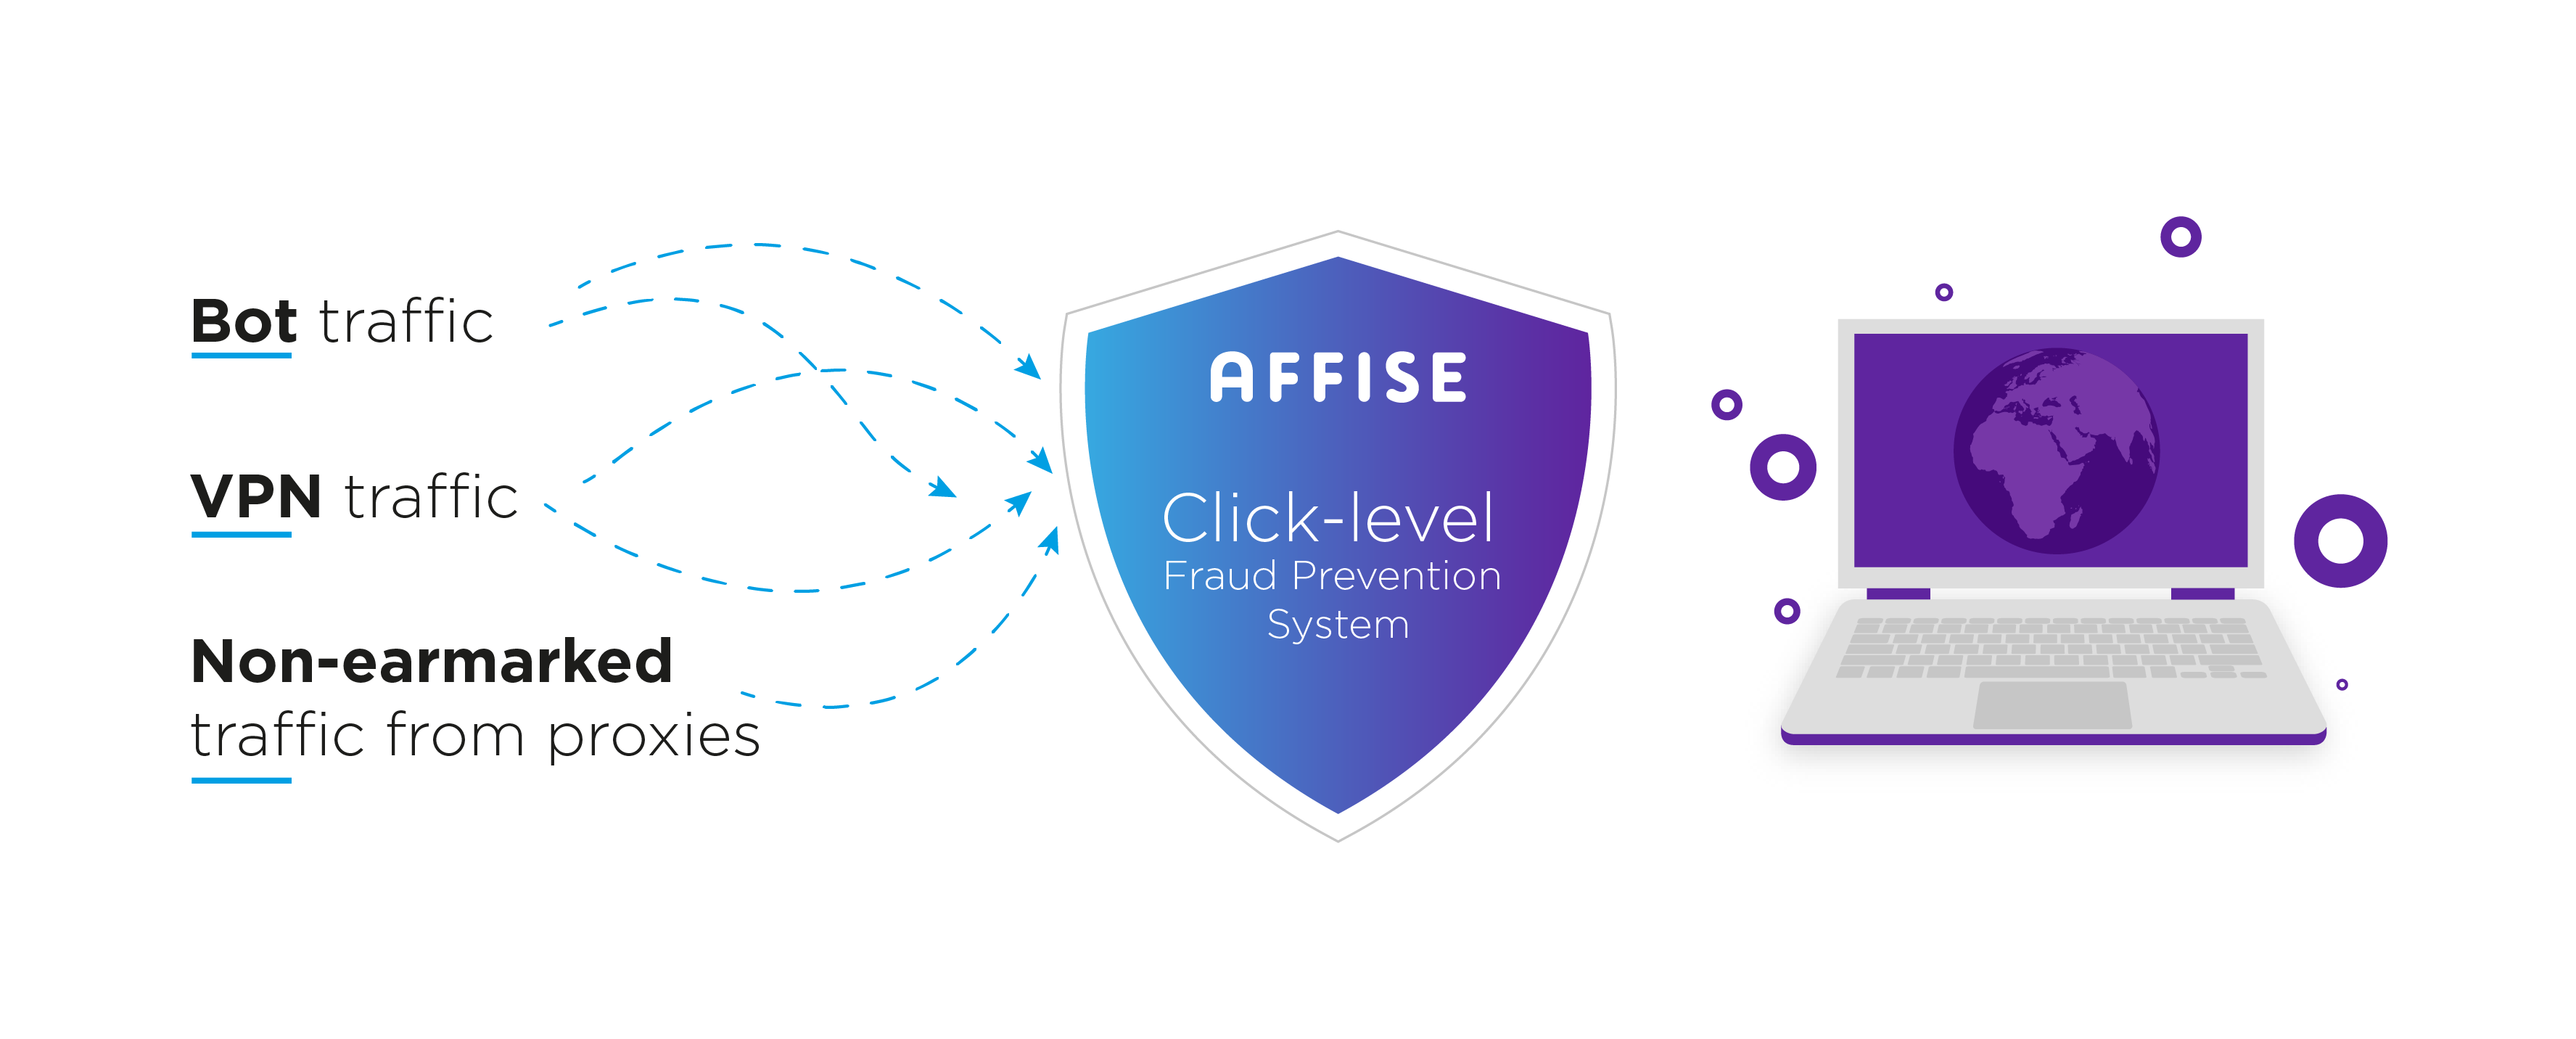 Announcing New Targeting Capabilities at Affise